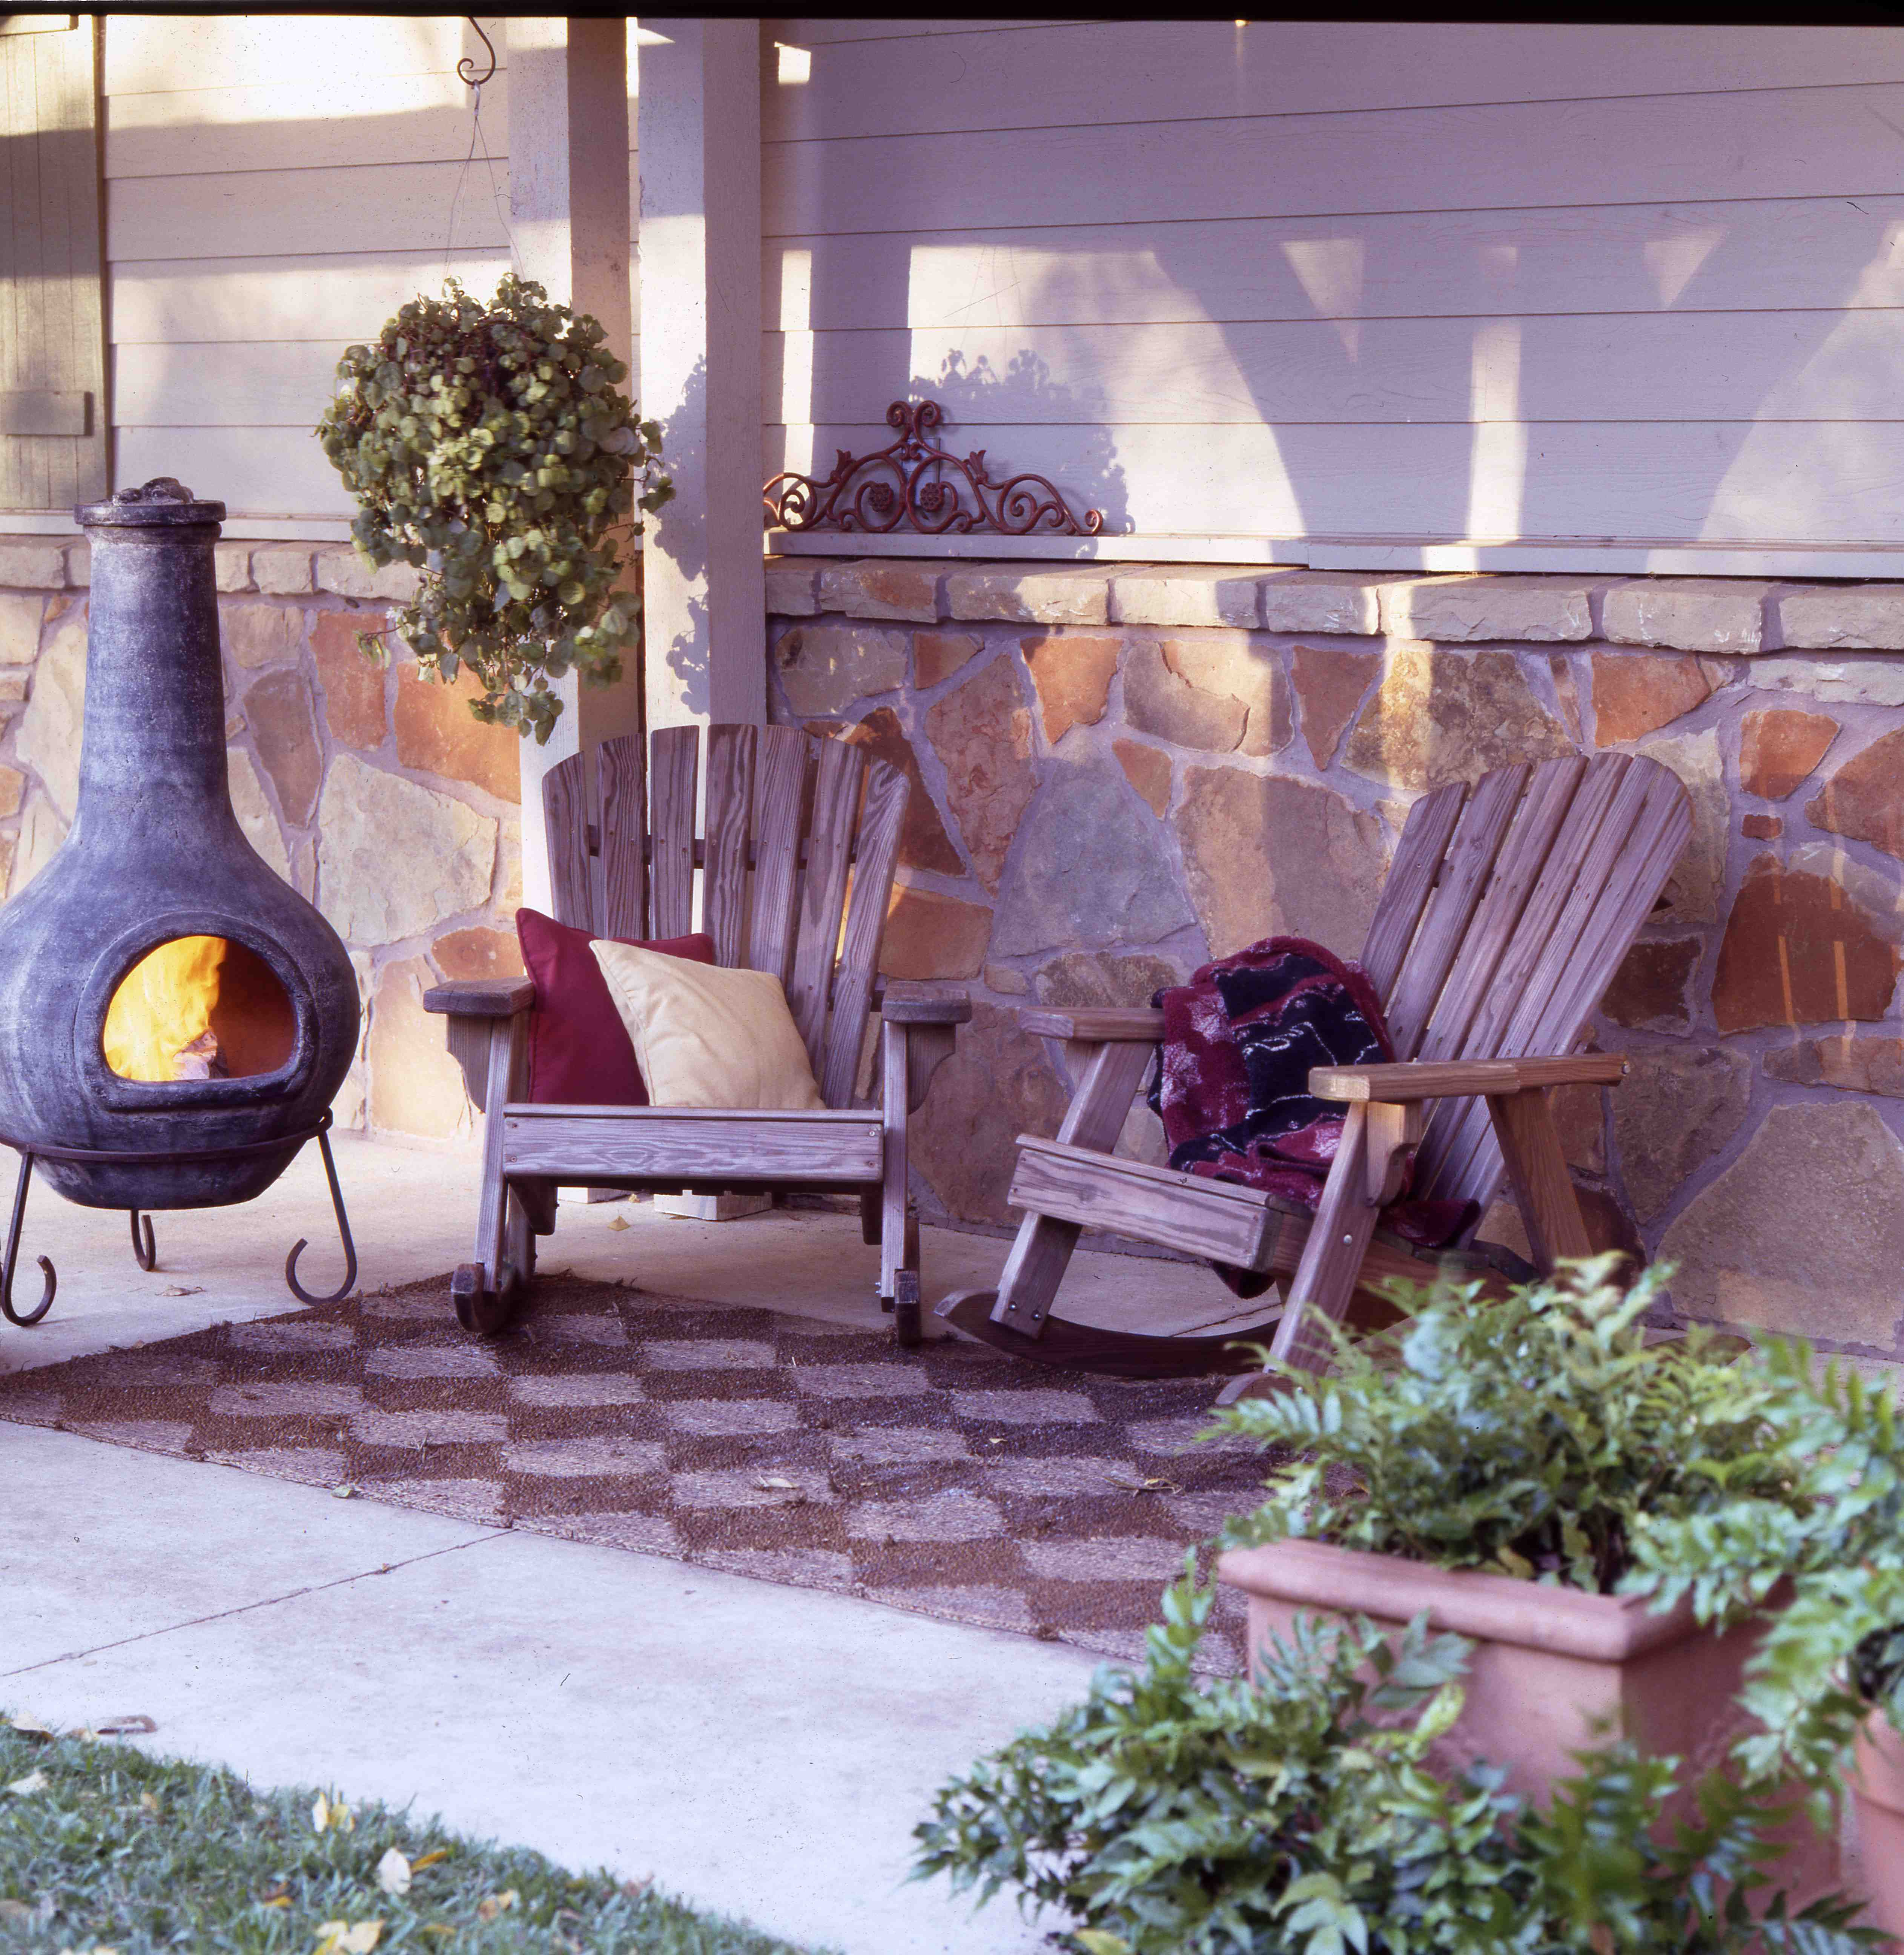 a chiminea is a small outdoor fireplace often made of clay treat